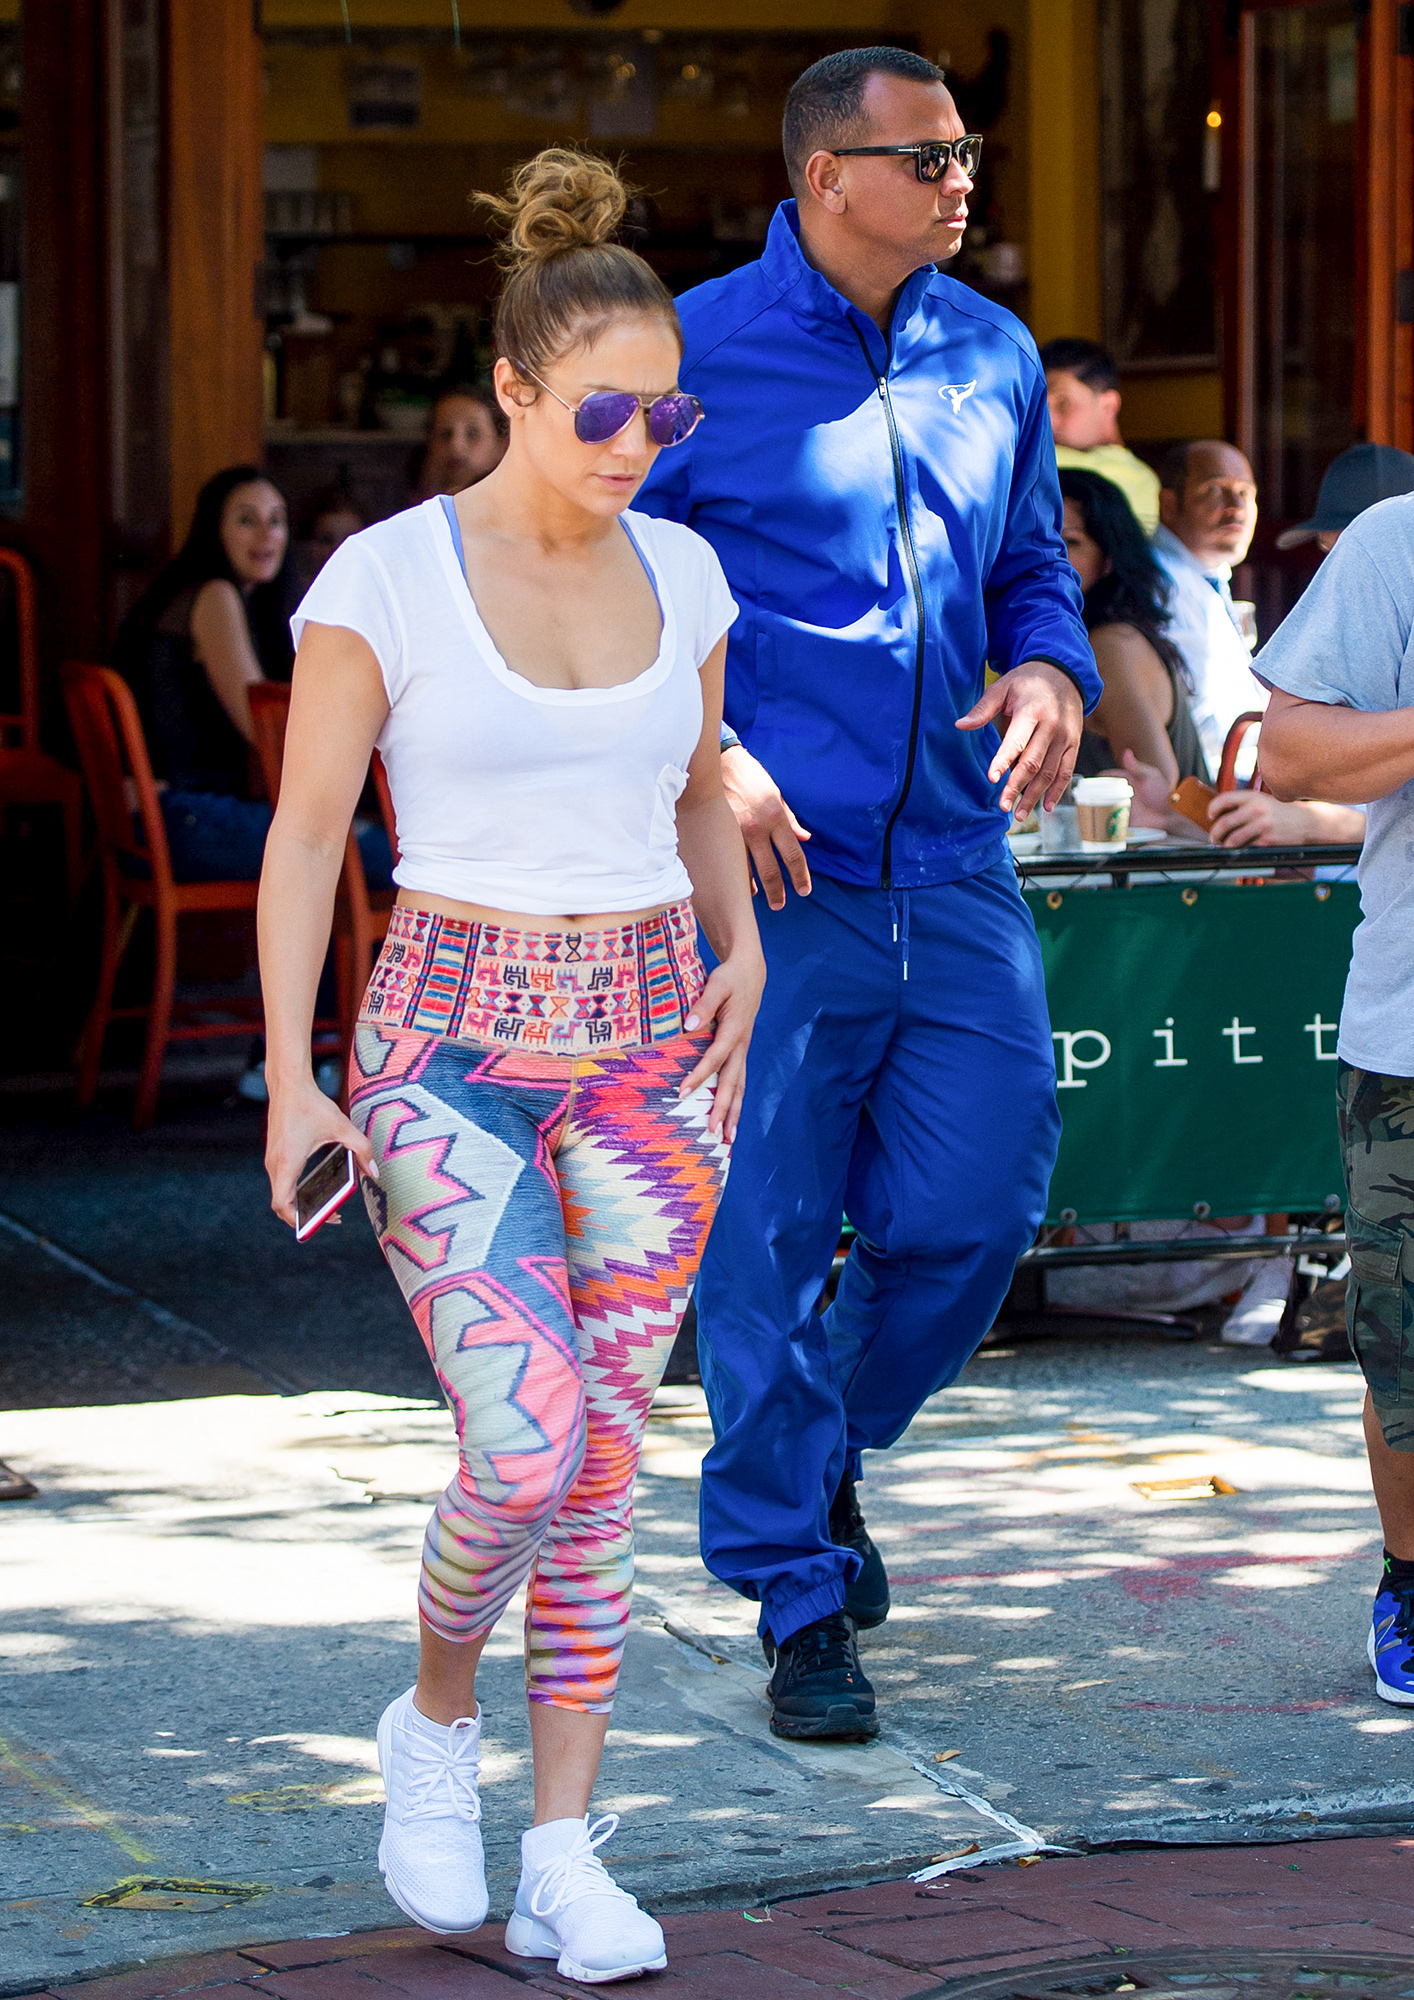 EXCLUSIVE: Jennifer Lopez and Alex Rodriguez seen at Bar Pitti celebrating her birthday